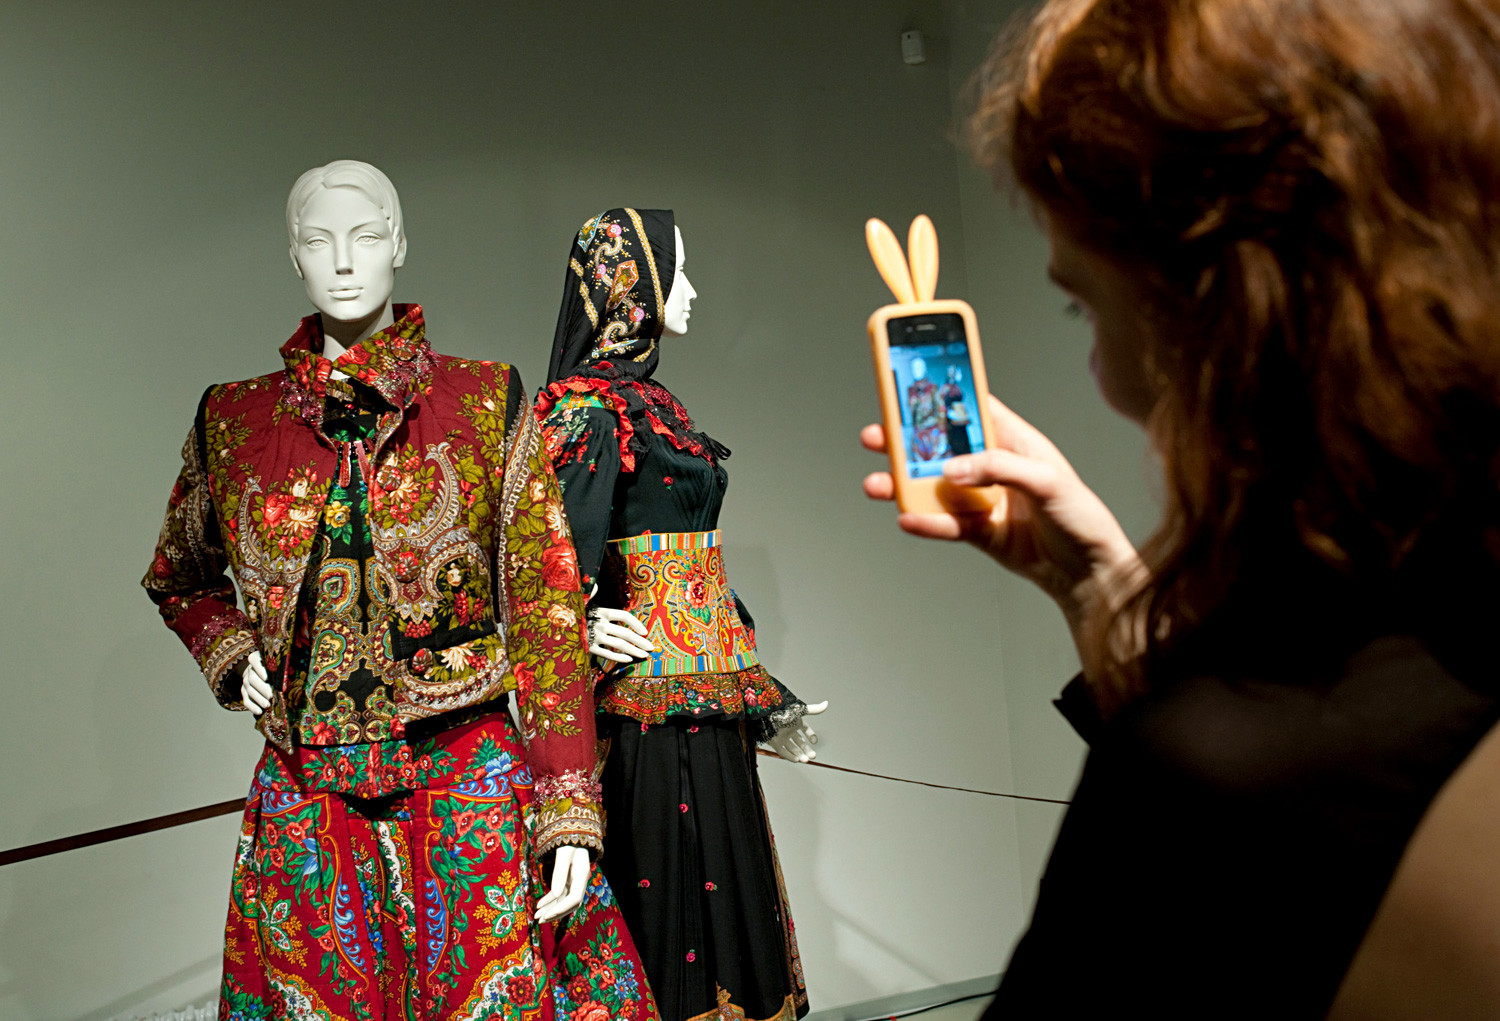 Visitor at the exhibition 'Half a century of fashion' by Slava Zaytsev held at the Museum of Contemporary Art